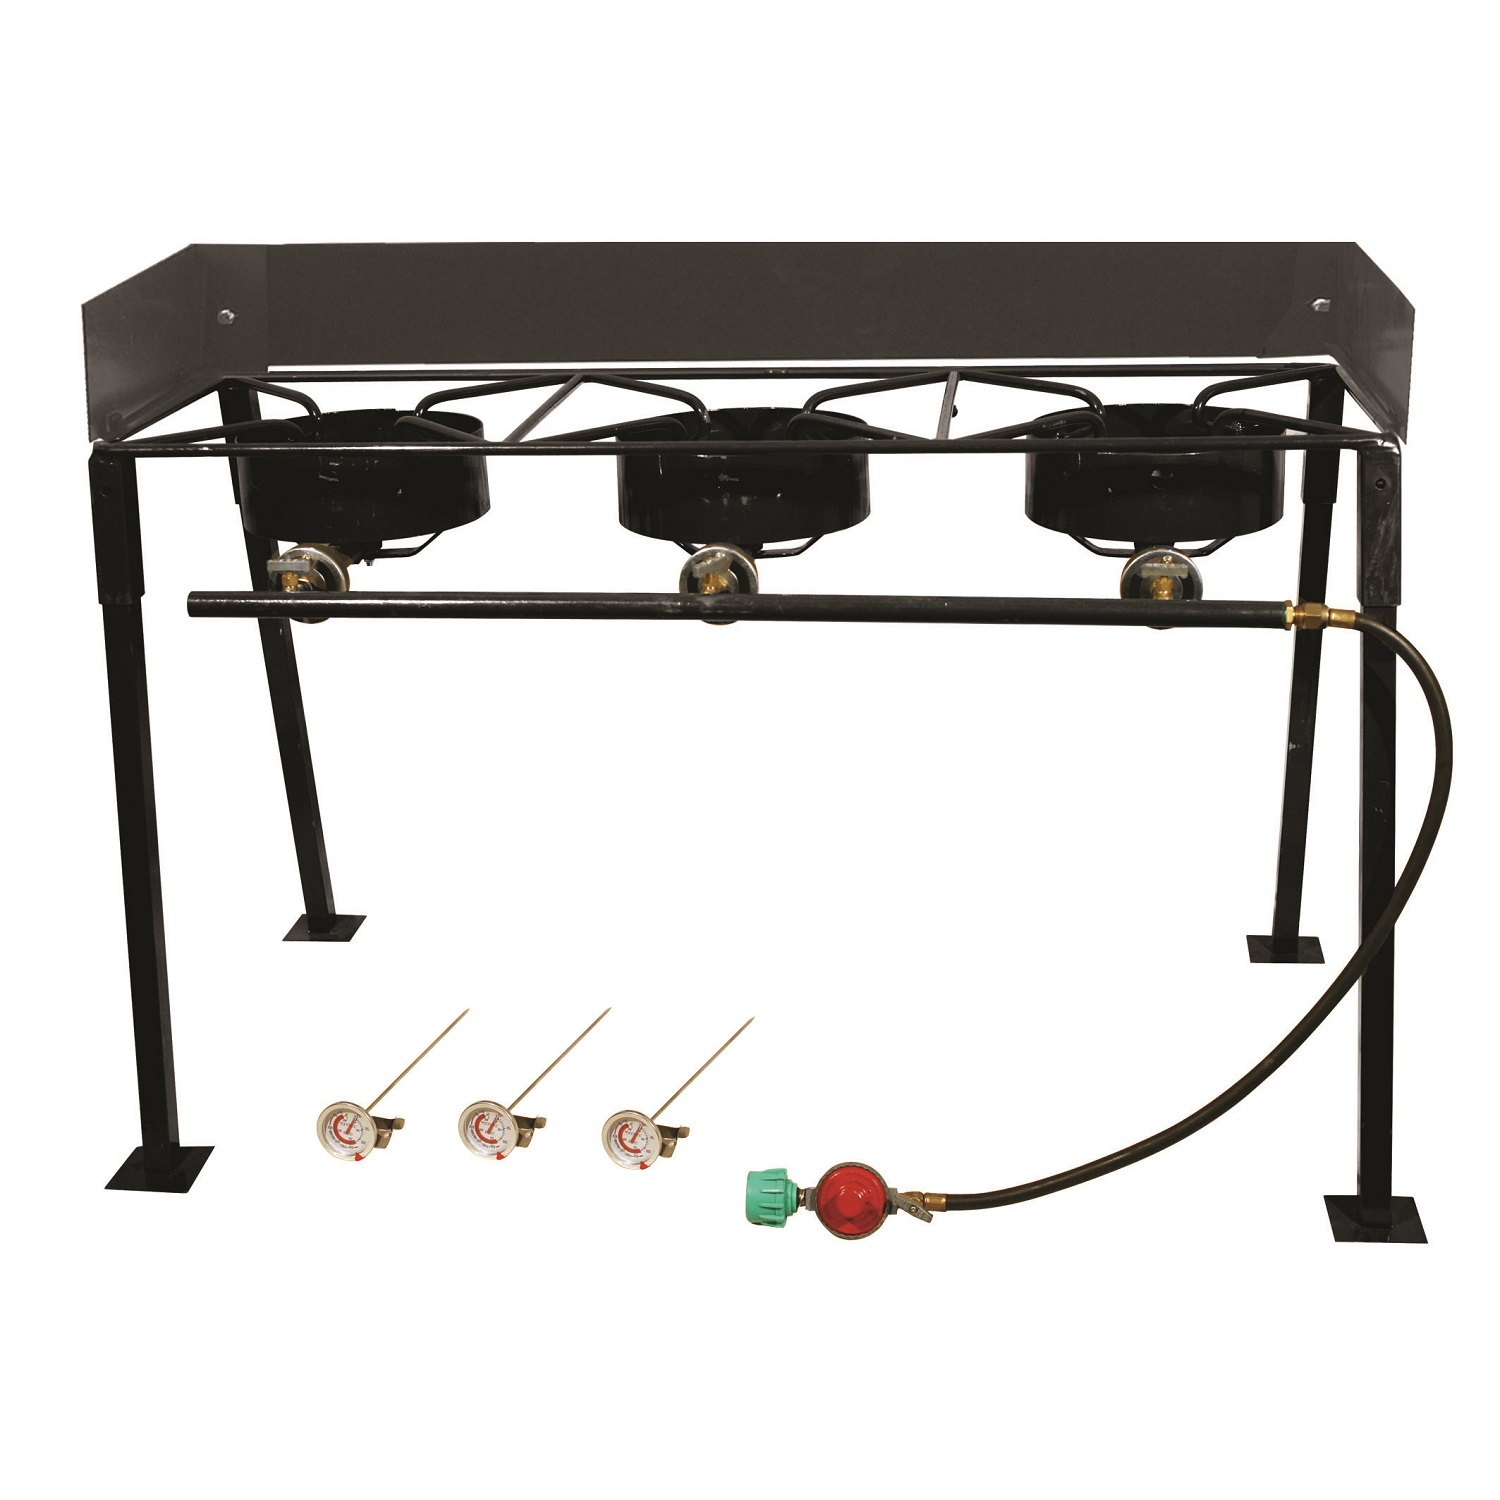 King Kooker Portable Propane 3-Burner Outdoor Camp Stove with Detachable Legs